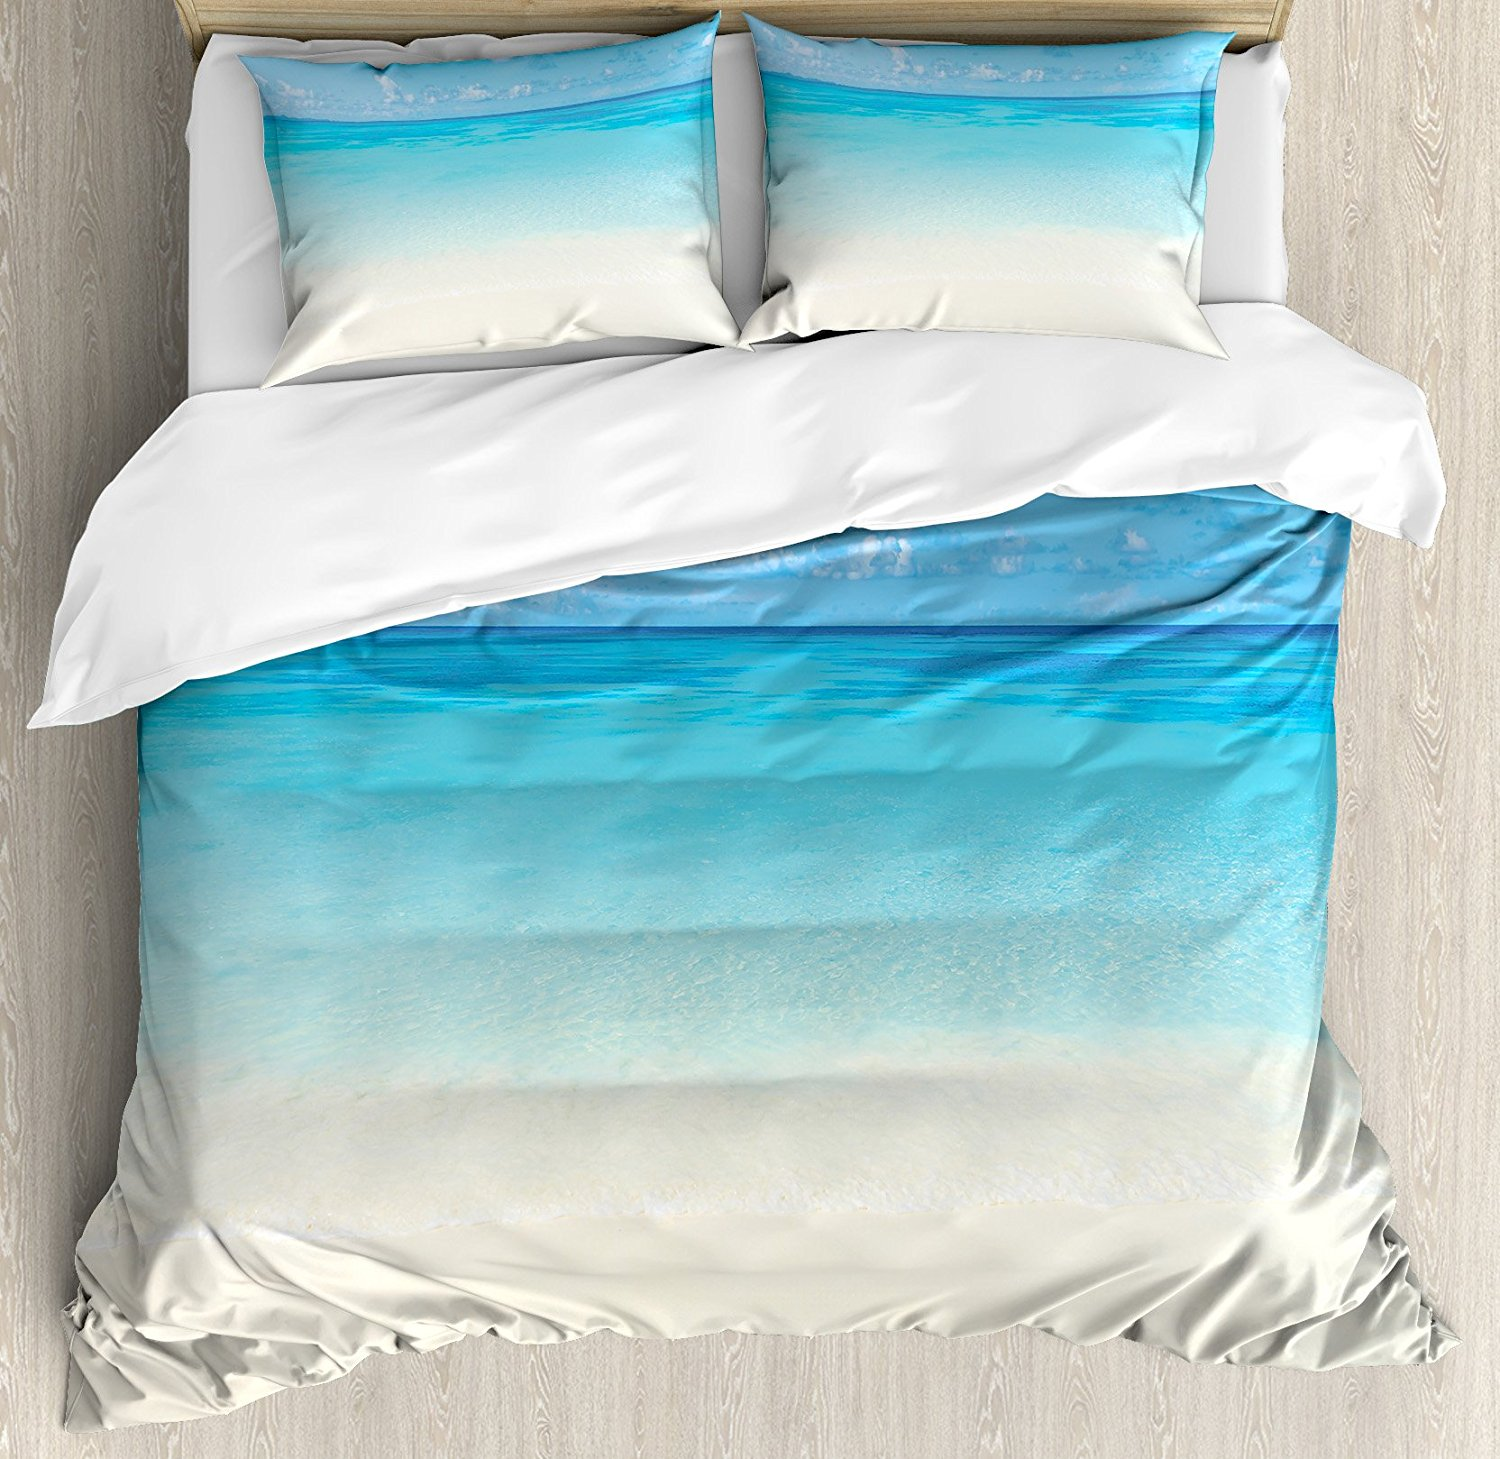 Ocean Duvet Cover Set Paradise Beach in Tropical Caribbean Sea with Fantastic Sky Calm Beach House Theme, 4 Piece Bedding Set